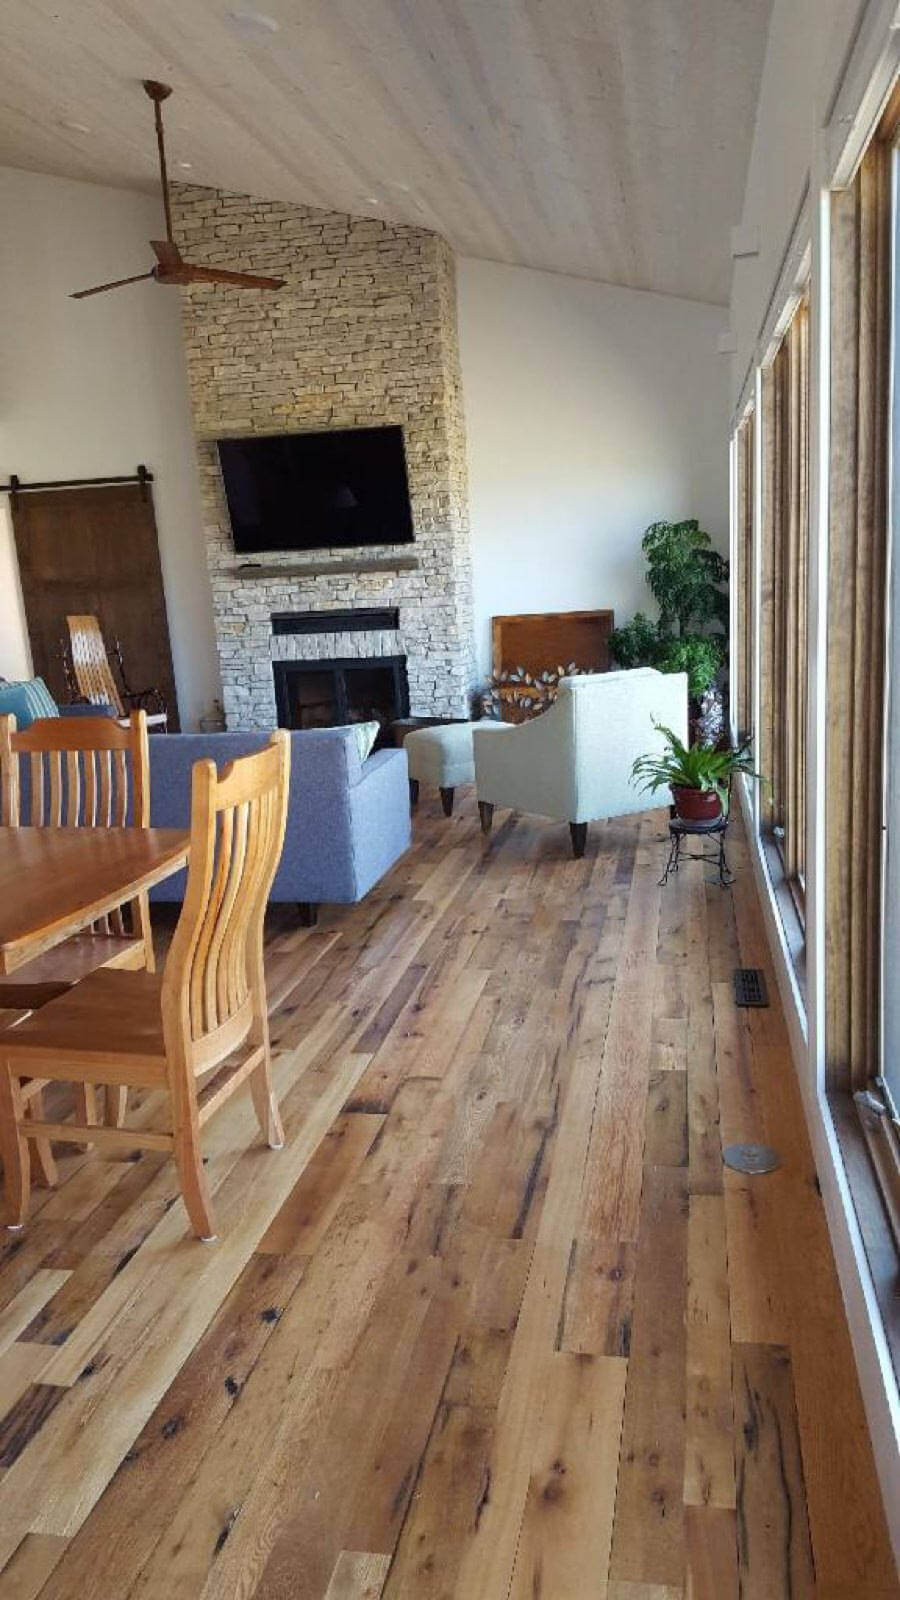 Reclaimed Tongue and Groove Flooring Adds Vintage Ambiance to Your Living Room